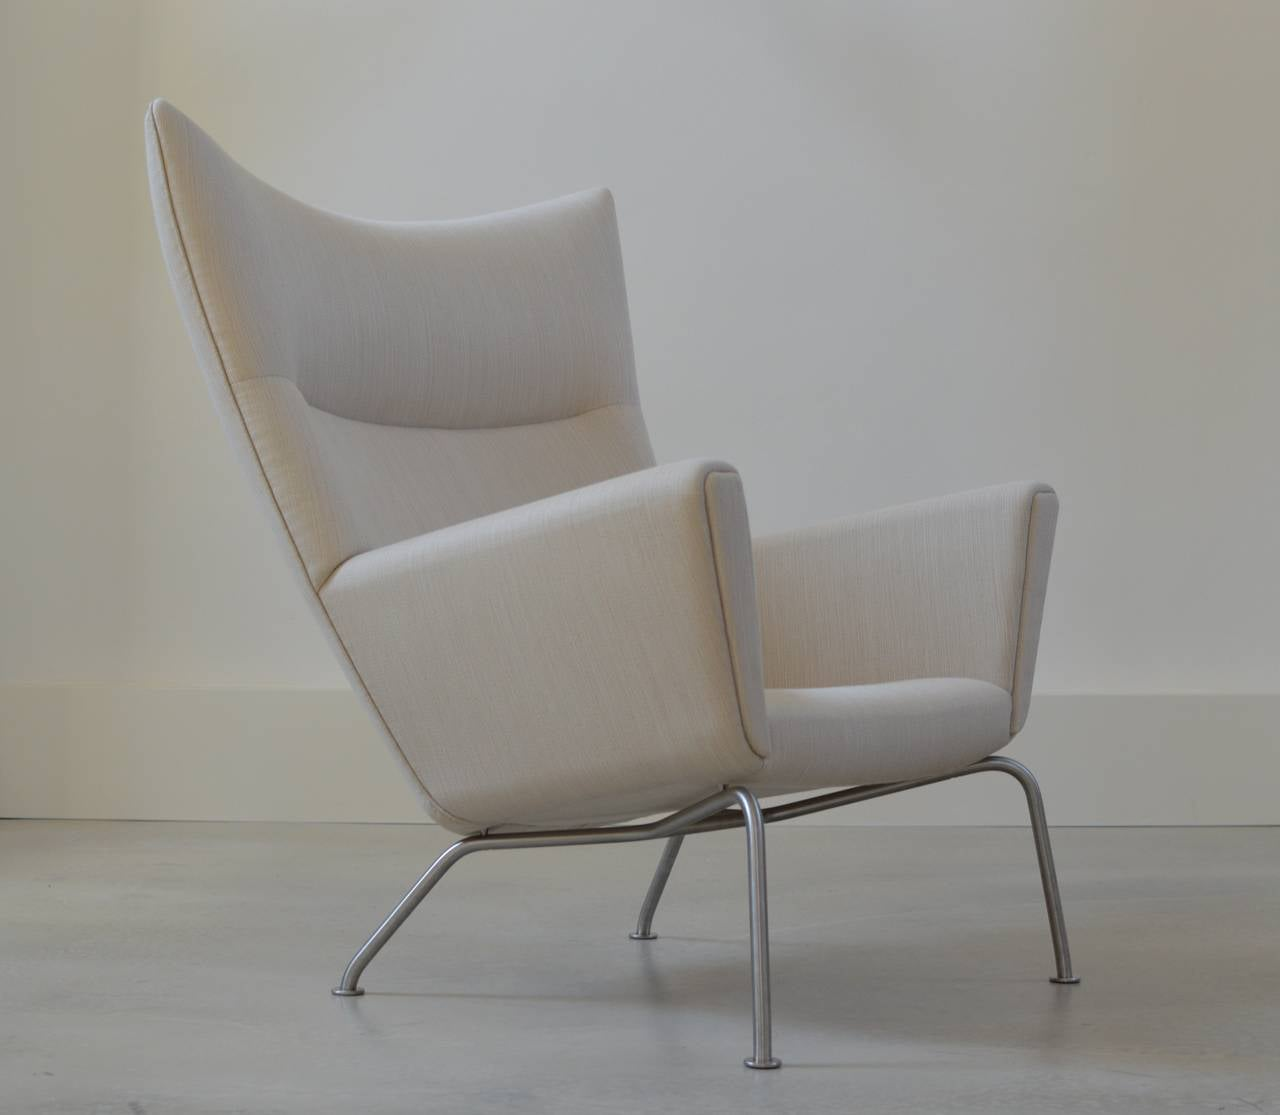 hans wegner wing chair by carl hansen at 1stdibs